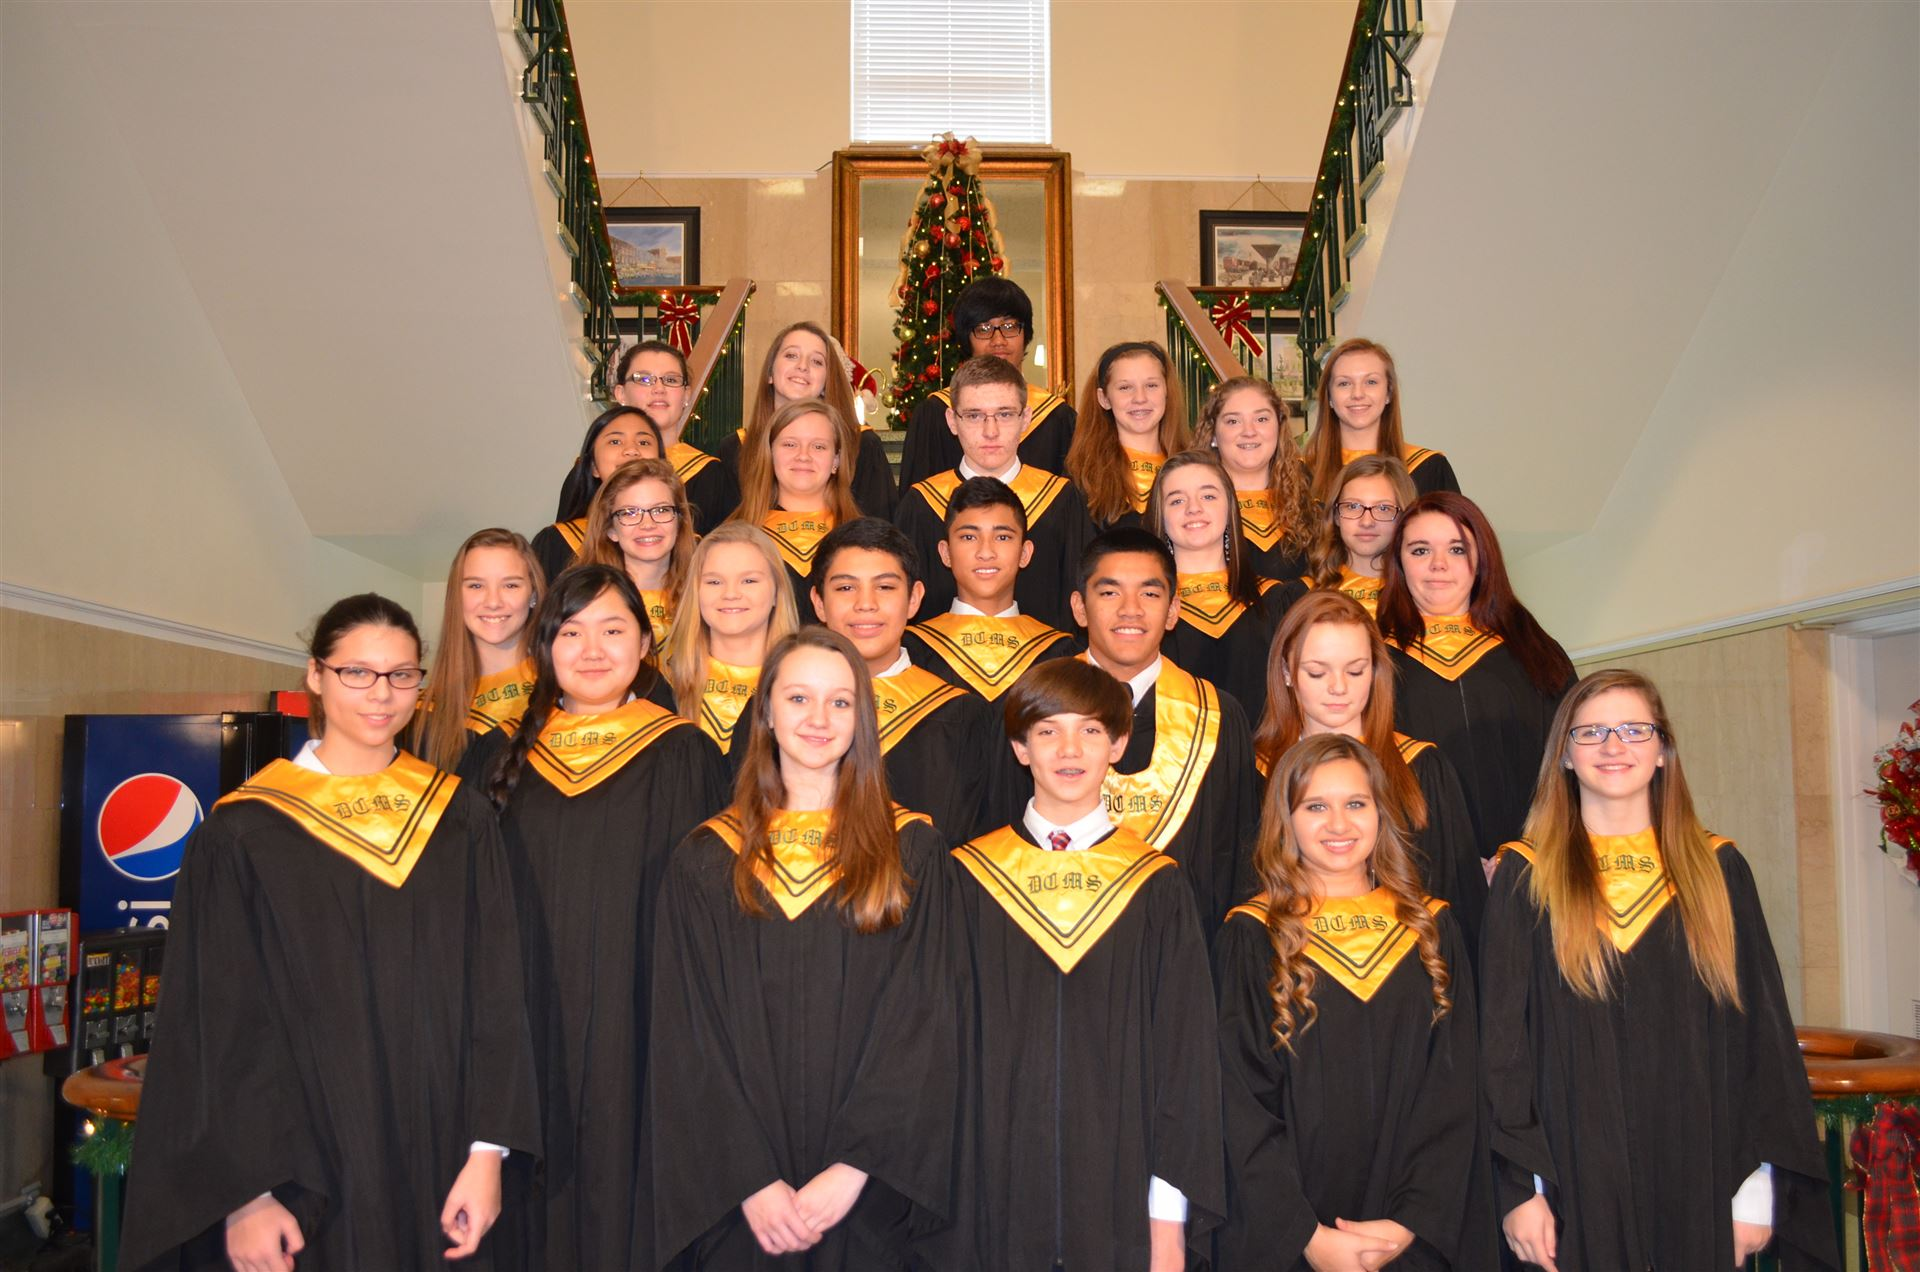 Choir sings at courthouse